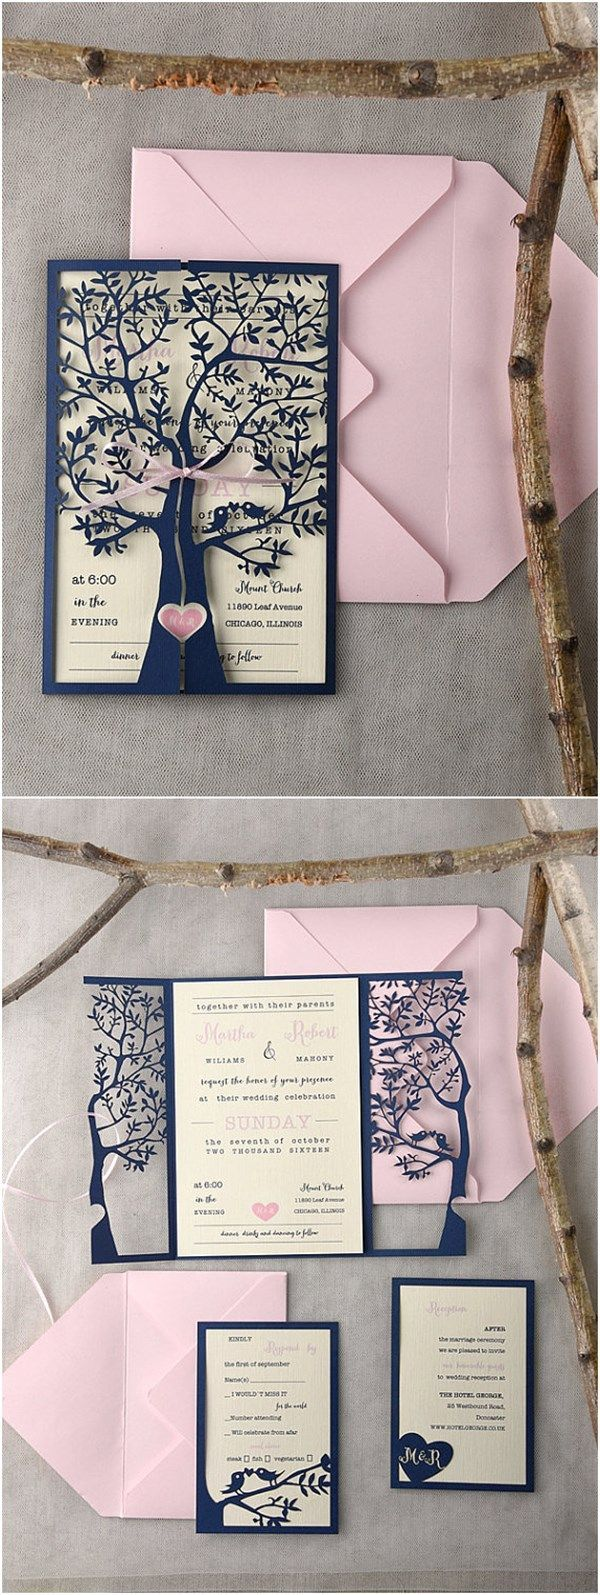 57 Best I Do Images On Pinterest Card Wedding Invitation Cards